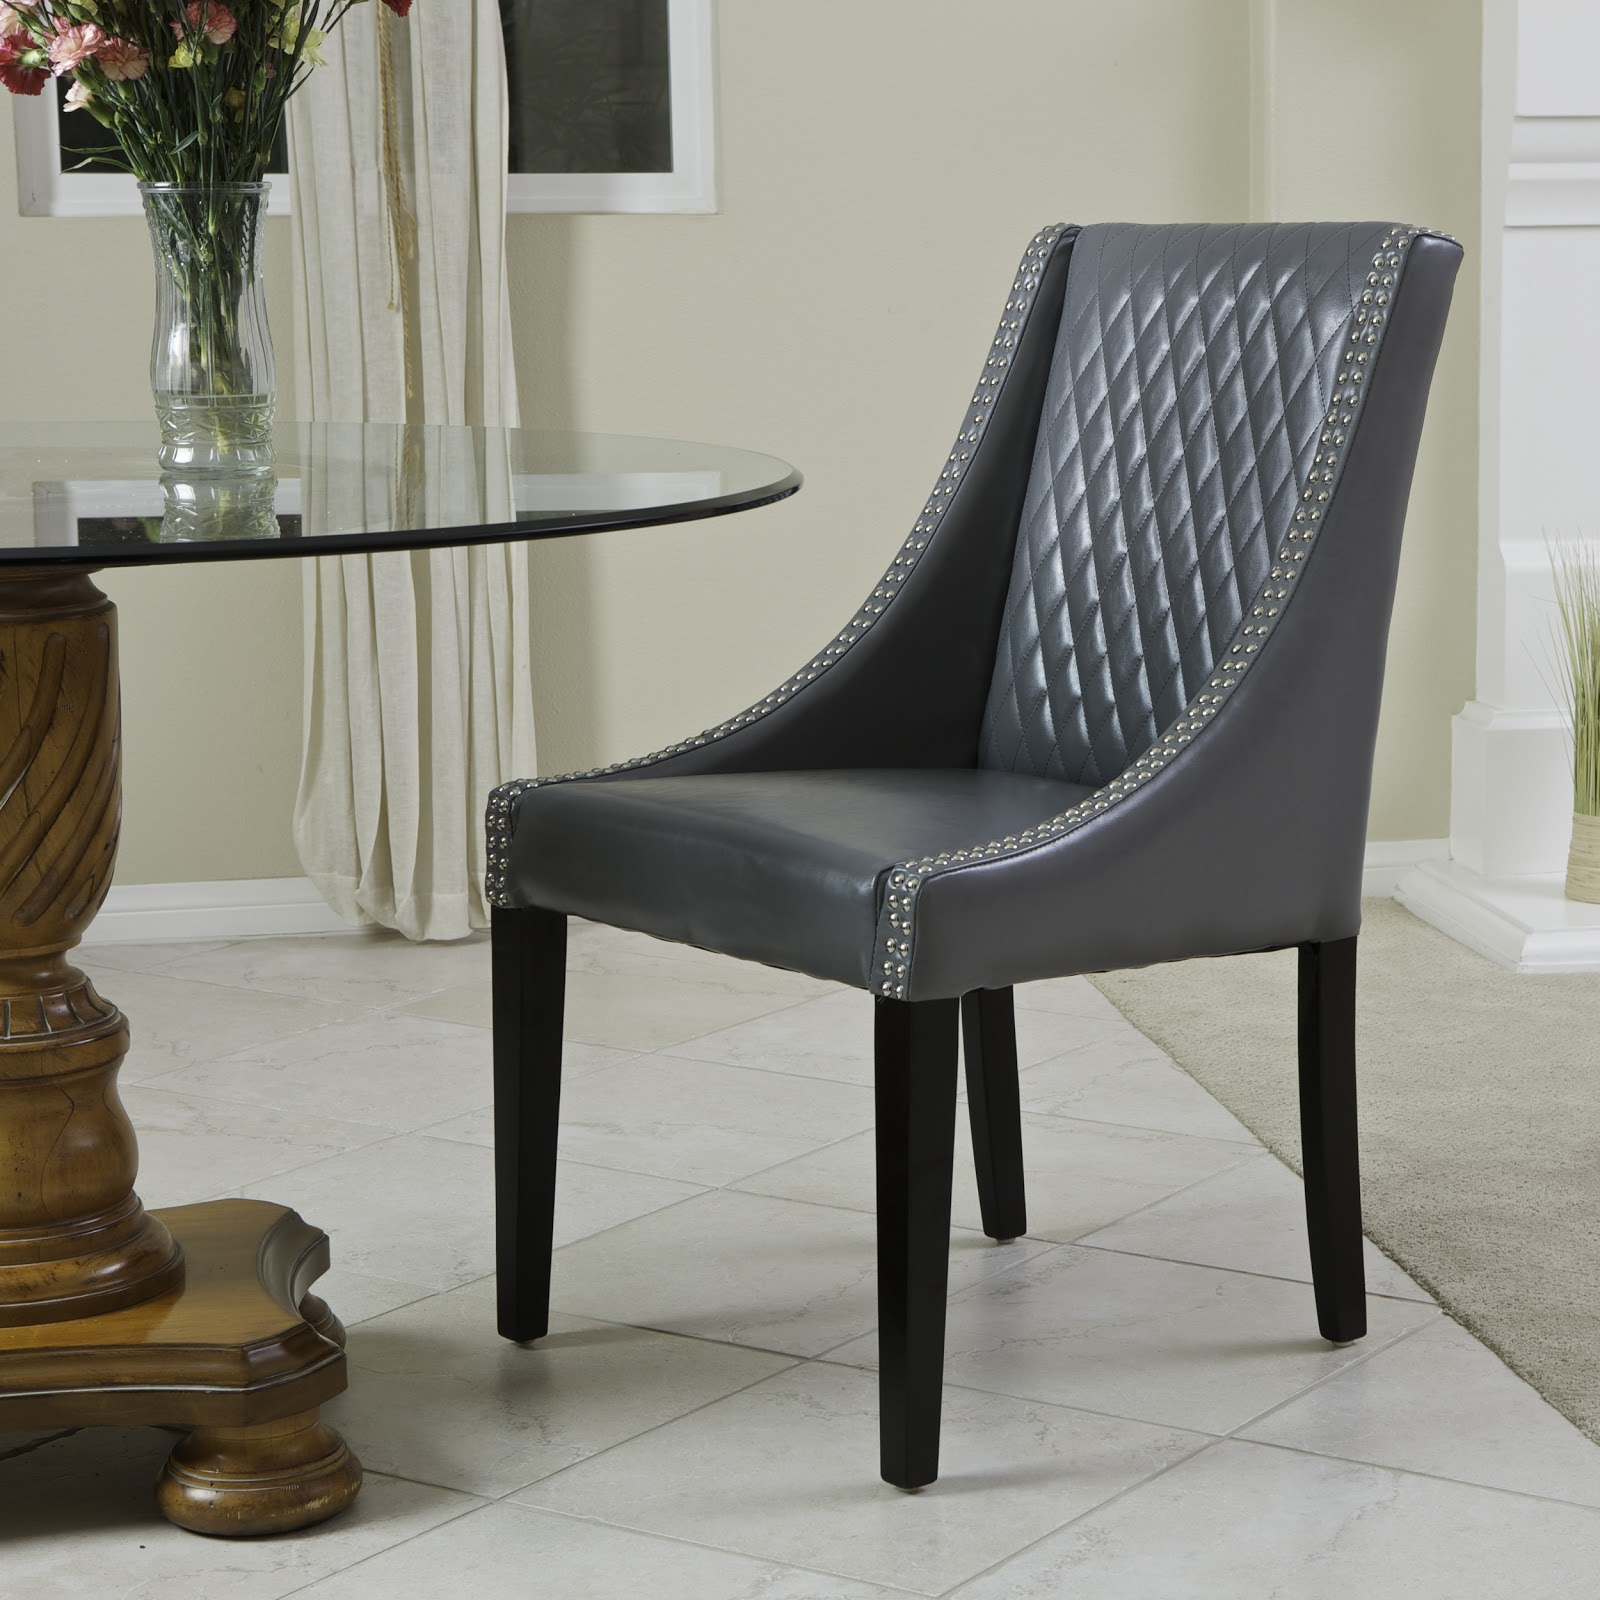 Leather Dining Chairs With Nailheads Charm Them At Hello Trend Alert Diamond Quilted Pattern